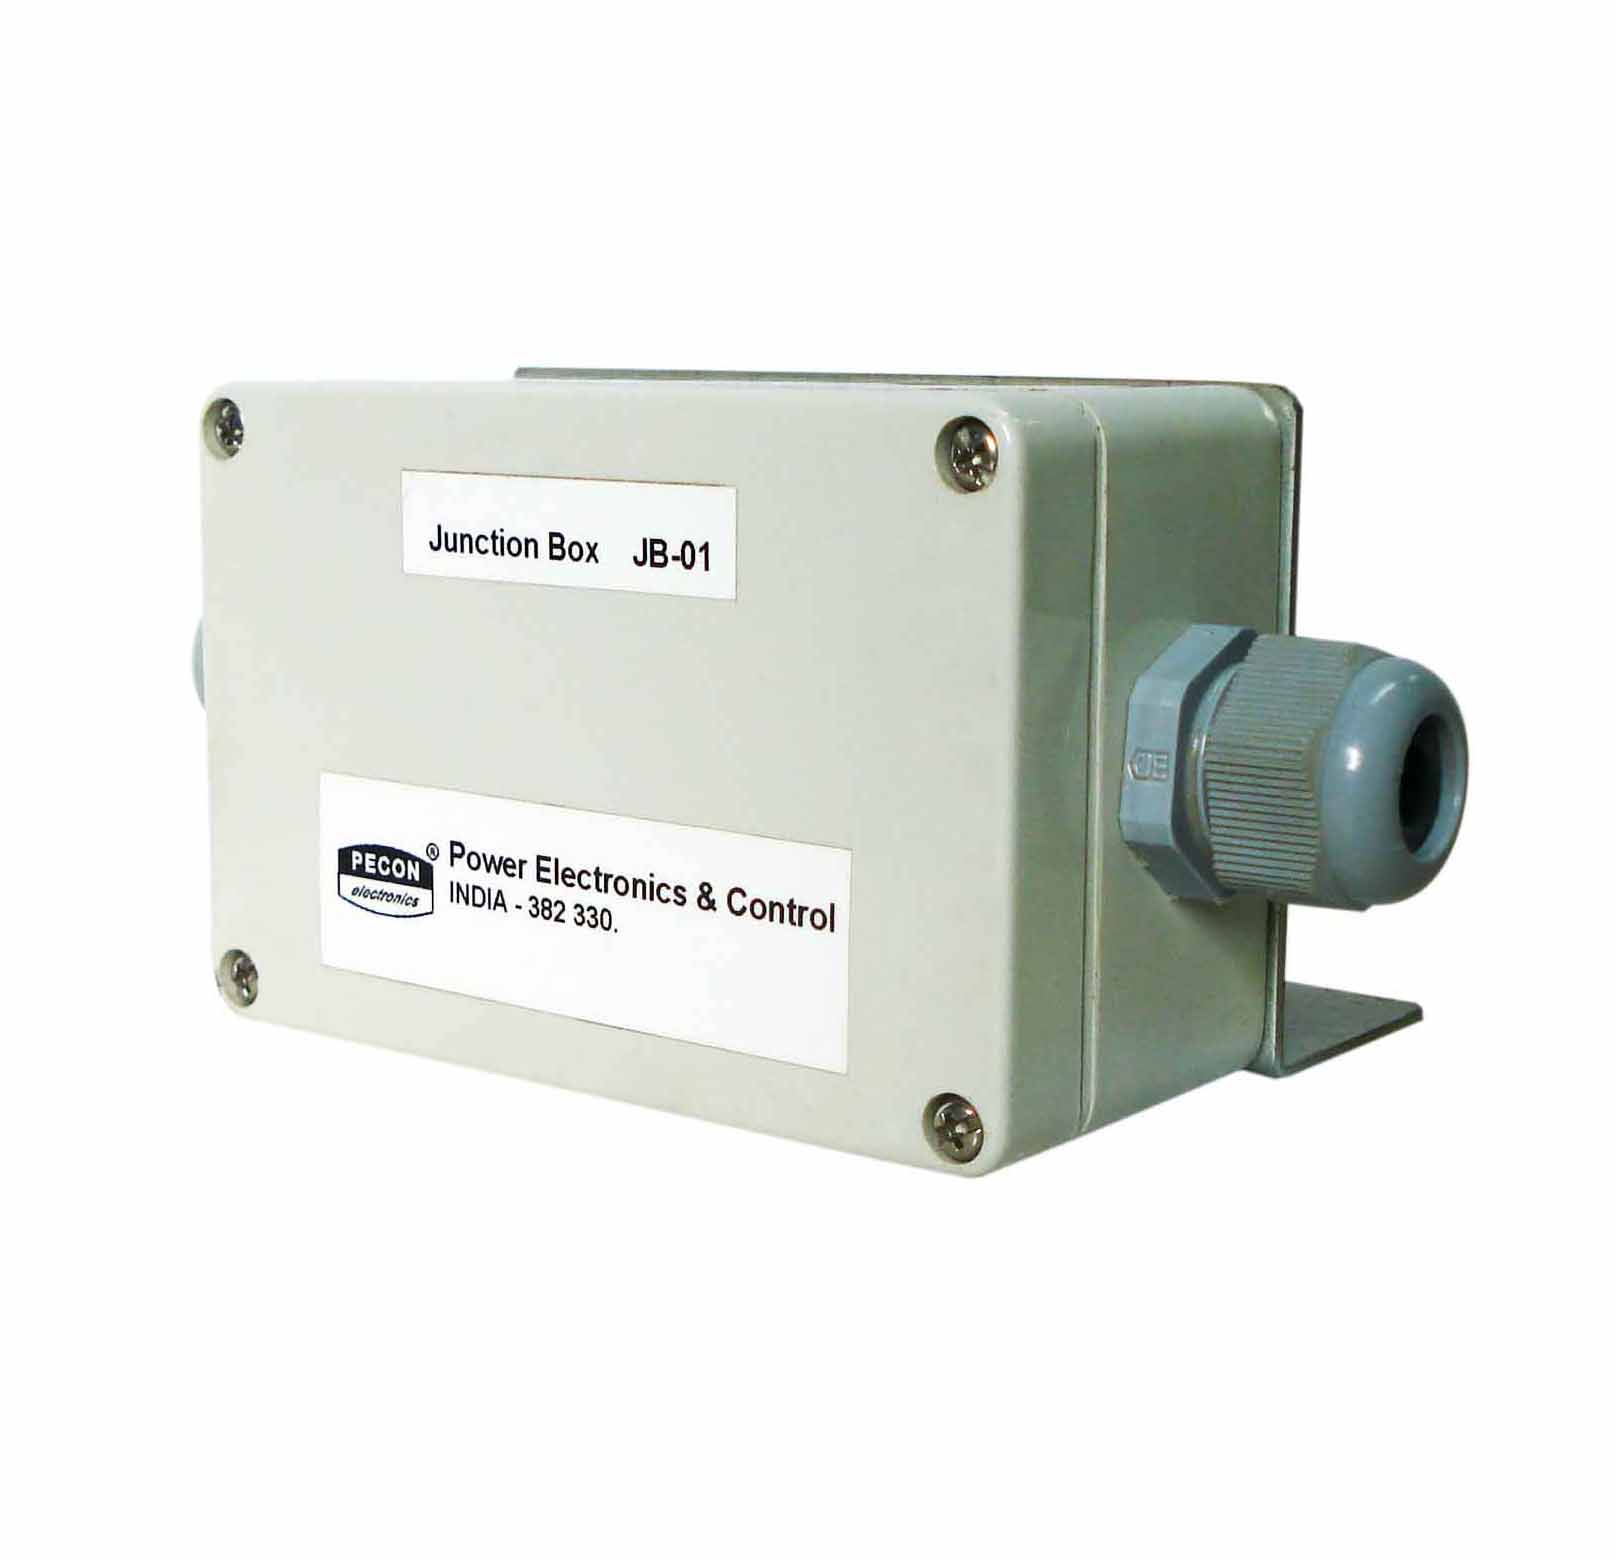 JB 01 Junction box suitable for 4 RTD S 02 sensors terminations